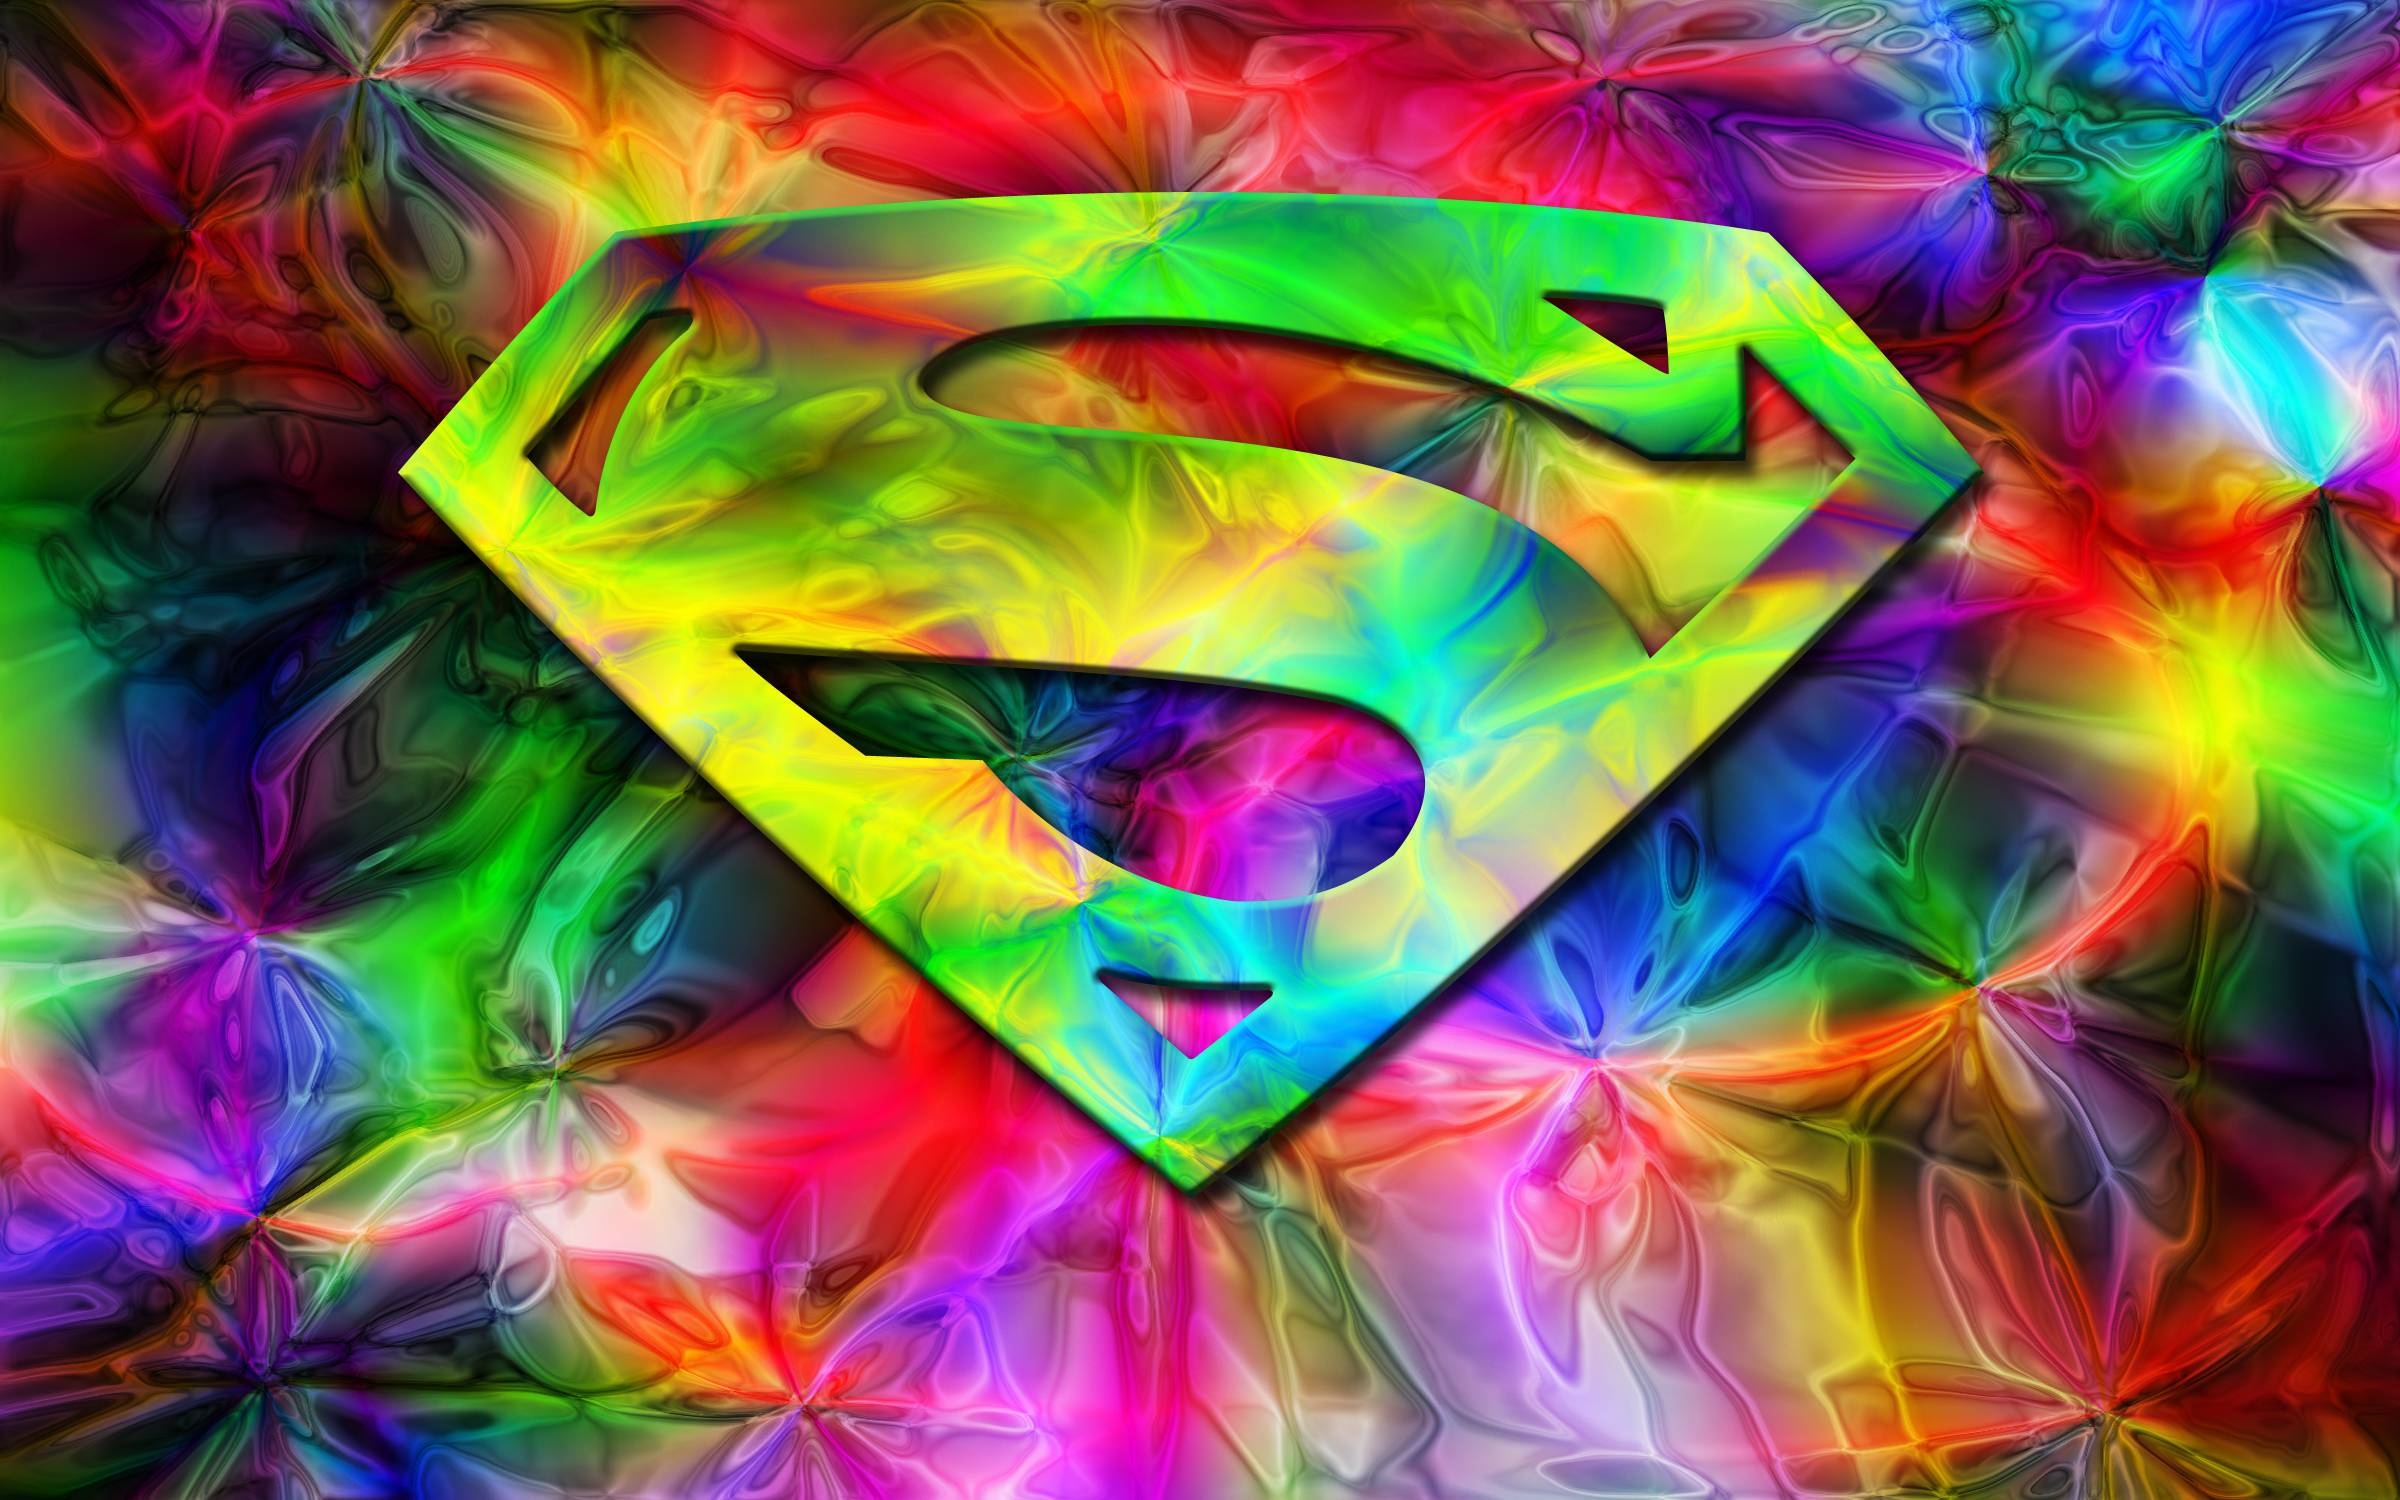 Awesome wallpapers hd photos superman hd wallpapers hd awesome wallpapers hd photos superman voltagebd Choice Image